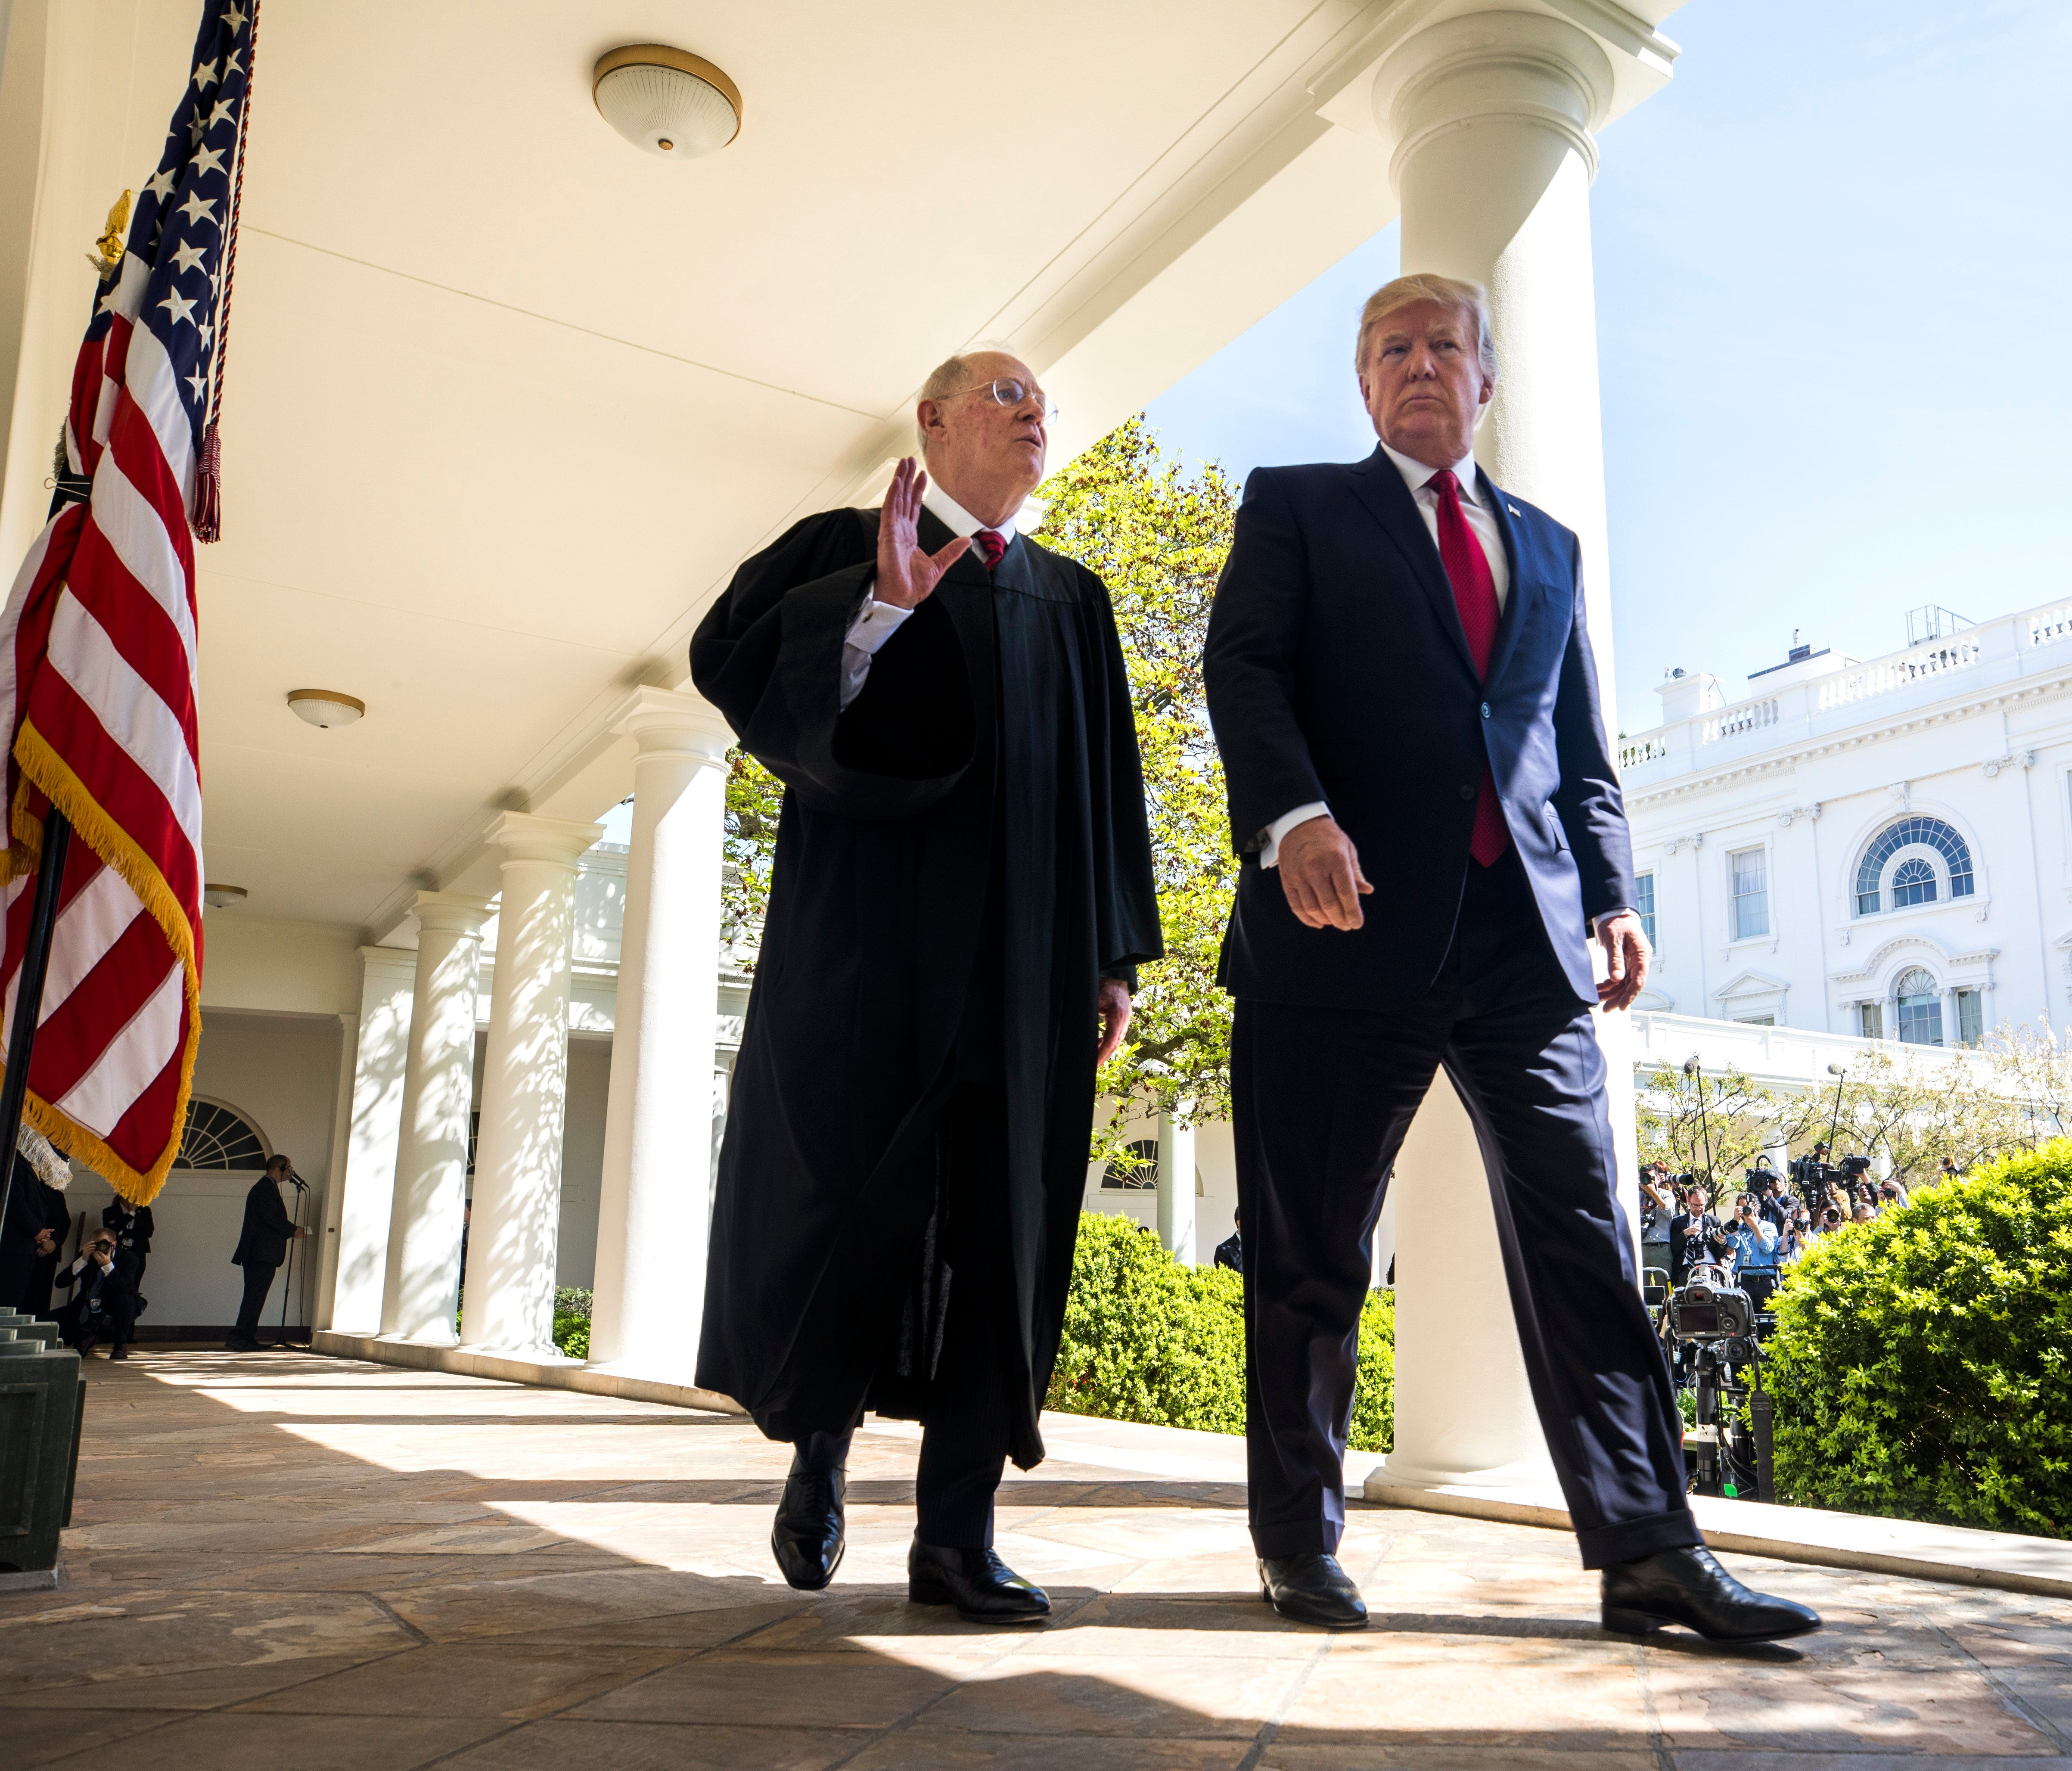 Supreme Court Justice Anthony Kennedy walked outside the White House with President Trump in April, when Justice Neil Gorsuch took the oath of office.